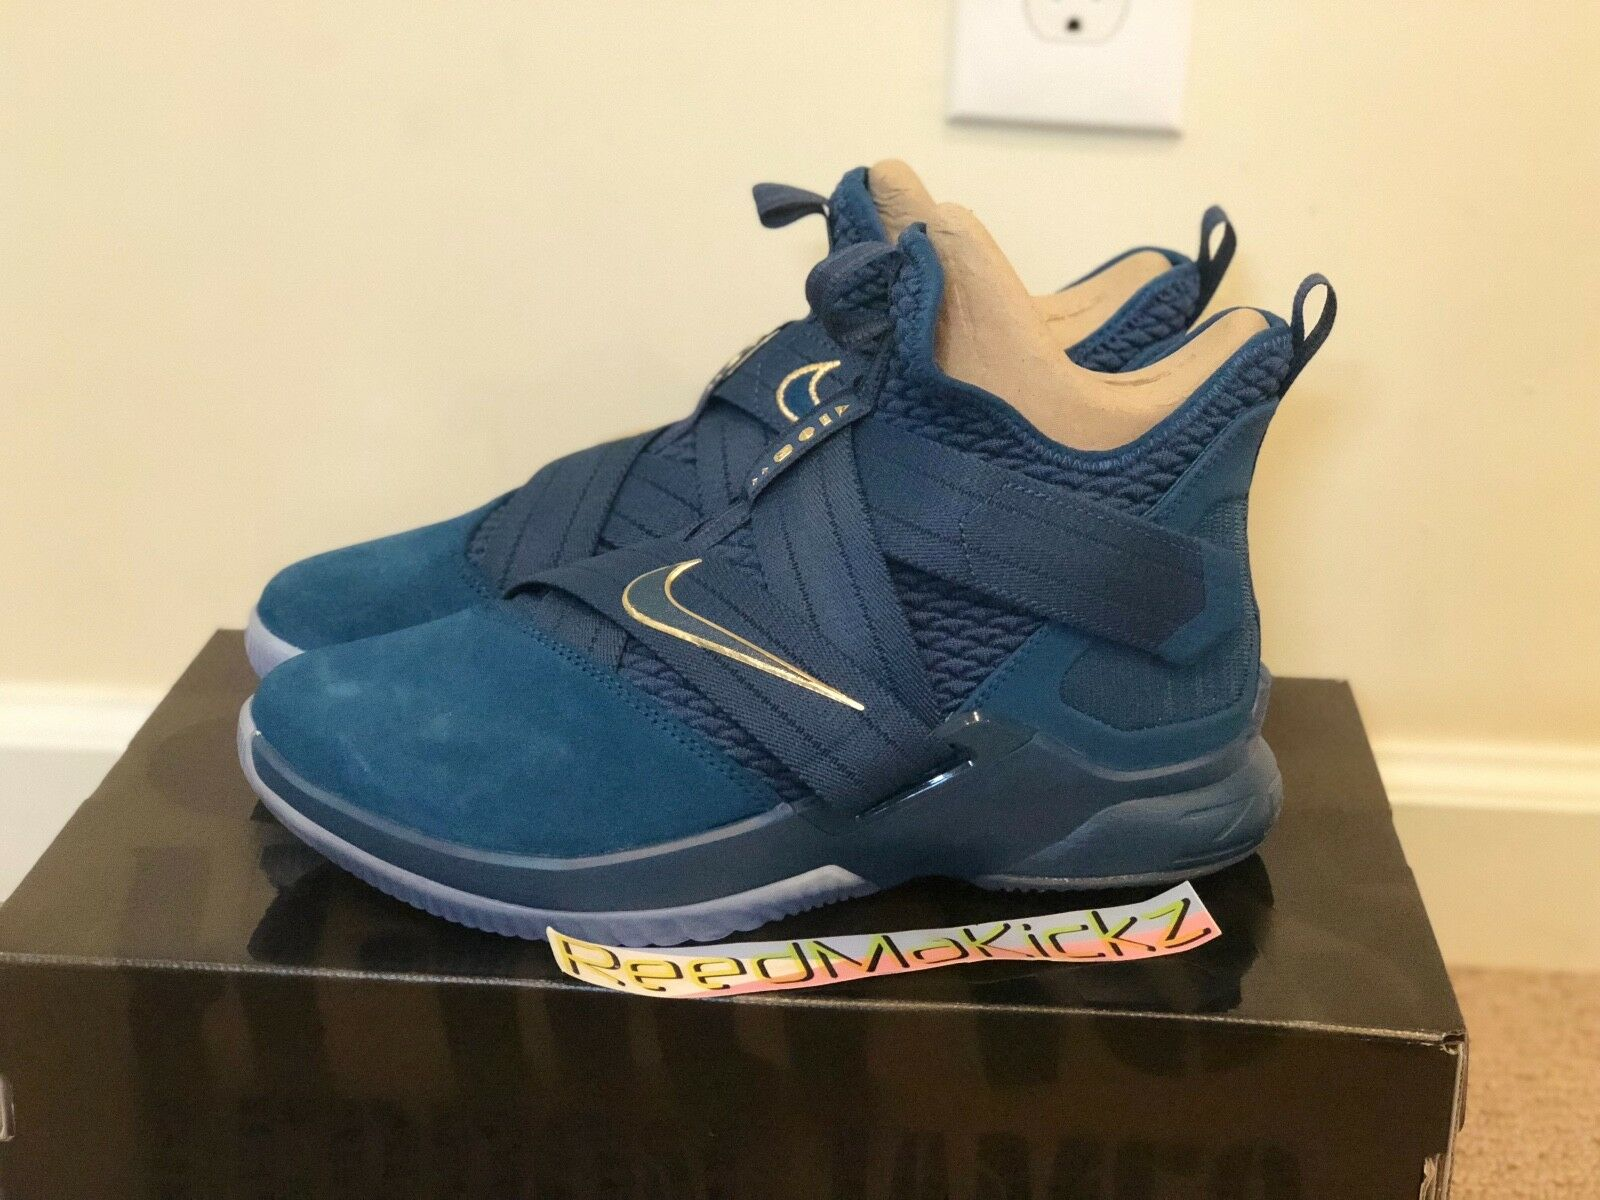 Nike Lebron Soldier XII SFG Agimat Philippines Pour des hommes Tailles AO4054 400